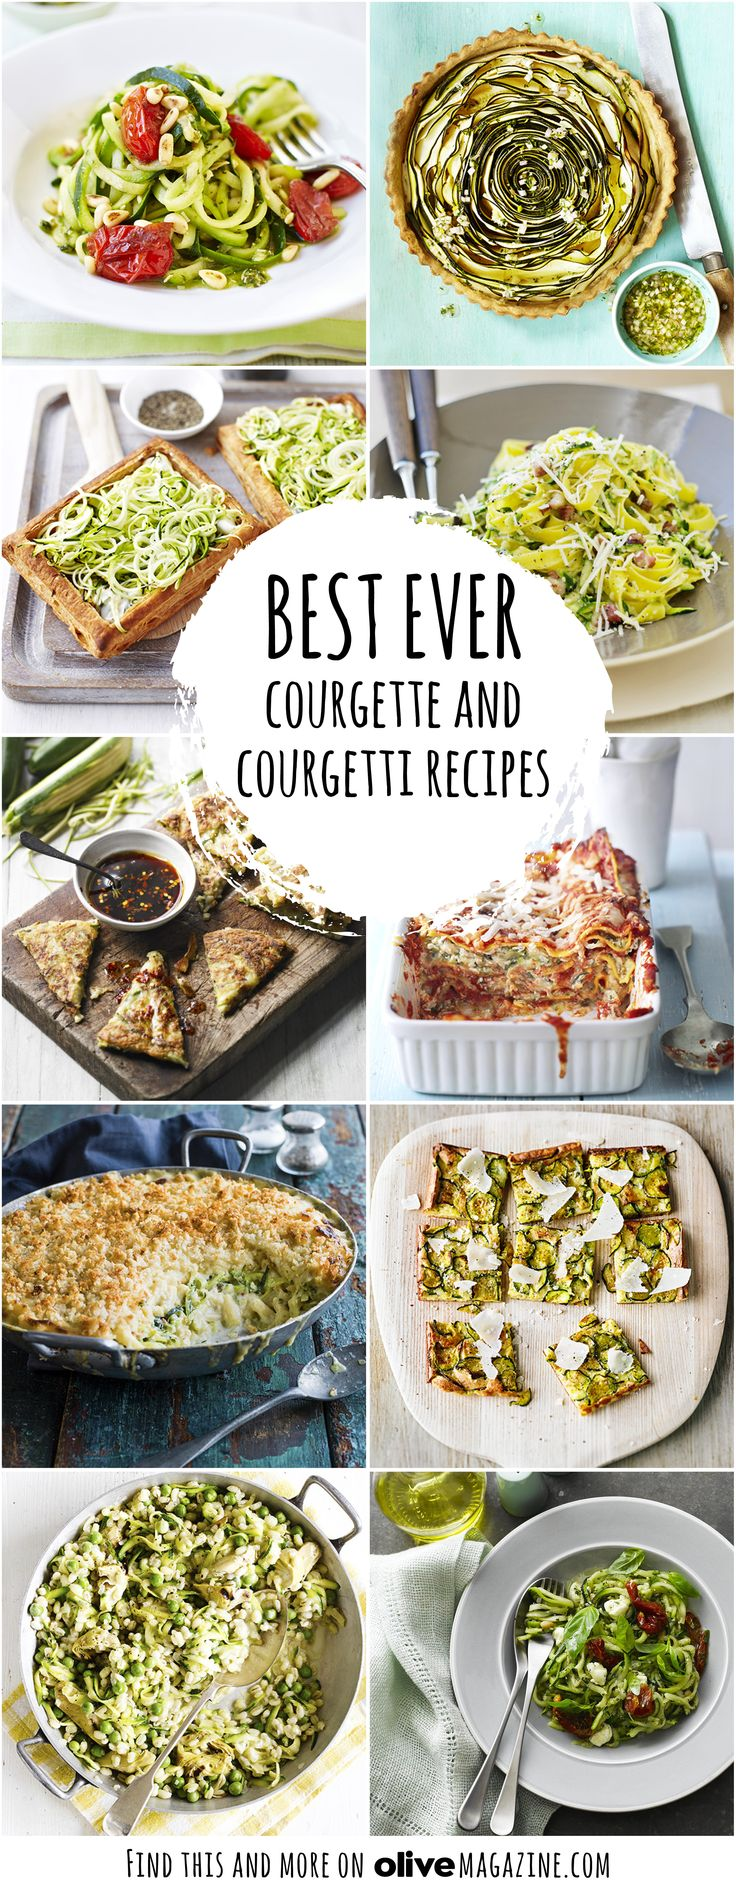 Courgette is a really versatile vegetable, available all year round and a substantial meat alternative. Try courgette twists on classics such as courgette carbonara, courgette lasagne and courgette mac 'n' cheese, go for Korean courgette pancakes with dipping sauce, or stay with the latest healthy food trend with our courgetti recipes, including courgetti, ricotta and tarragon tarts.